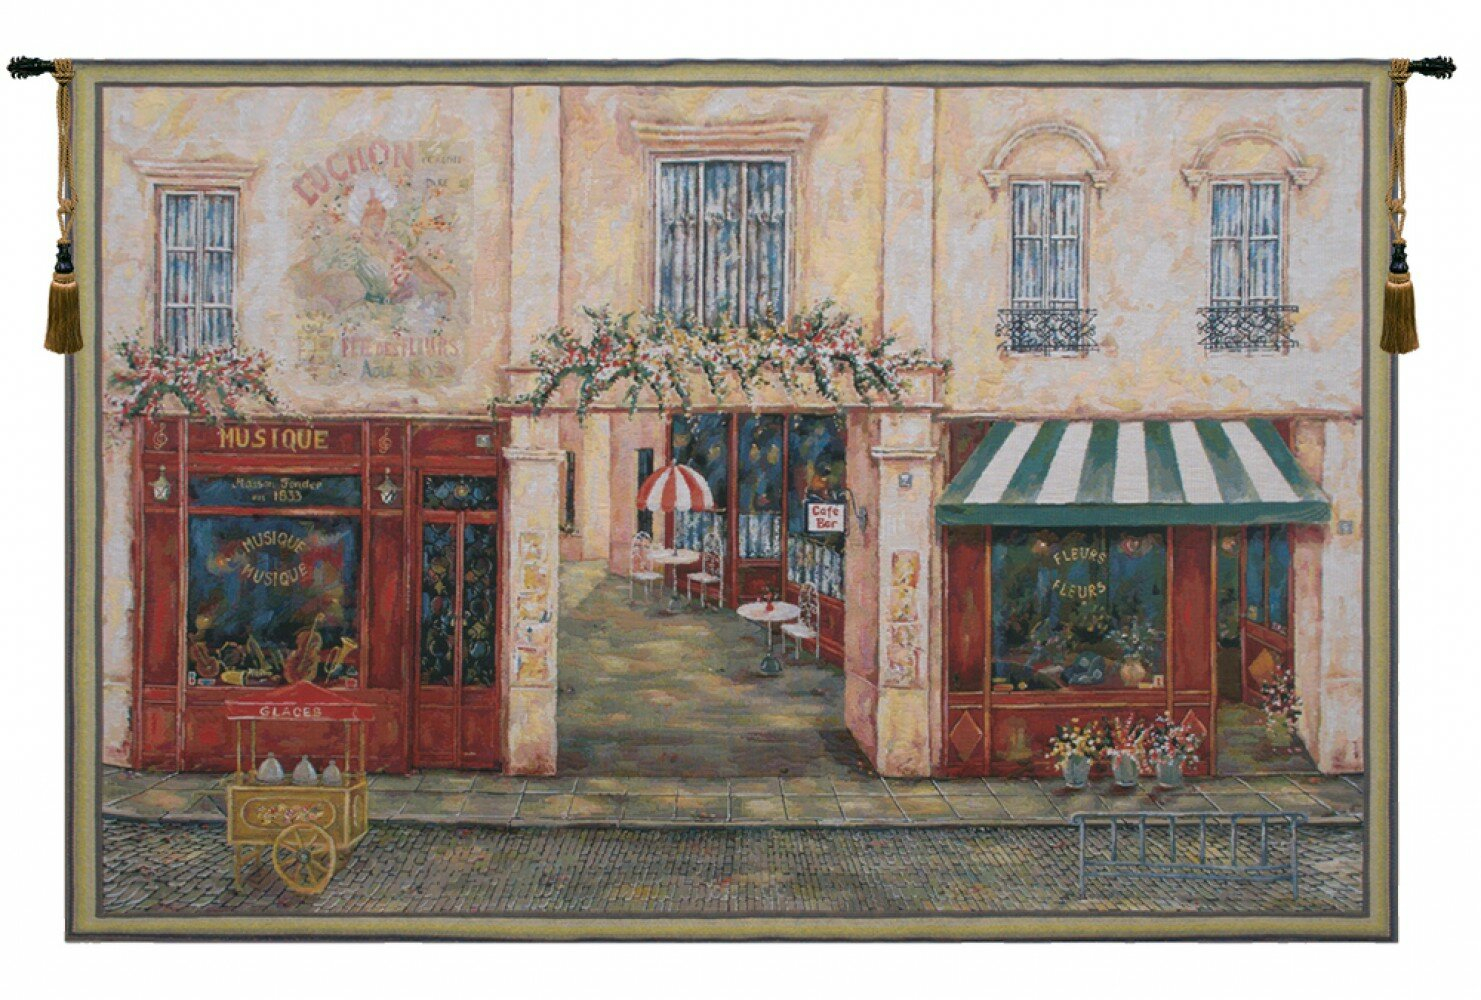 Luchon Terrasse Tapestry Pertaining To Most Current Blended Fabric Morning Reflections By Robert Pejman Flanders Tapestries (View 3 of 8)